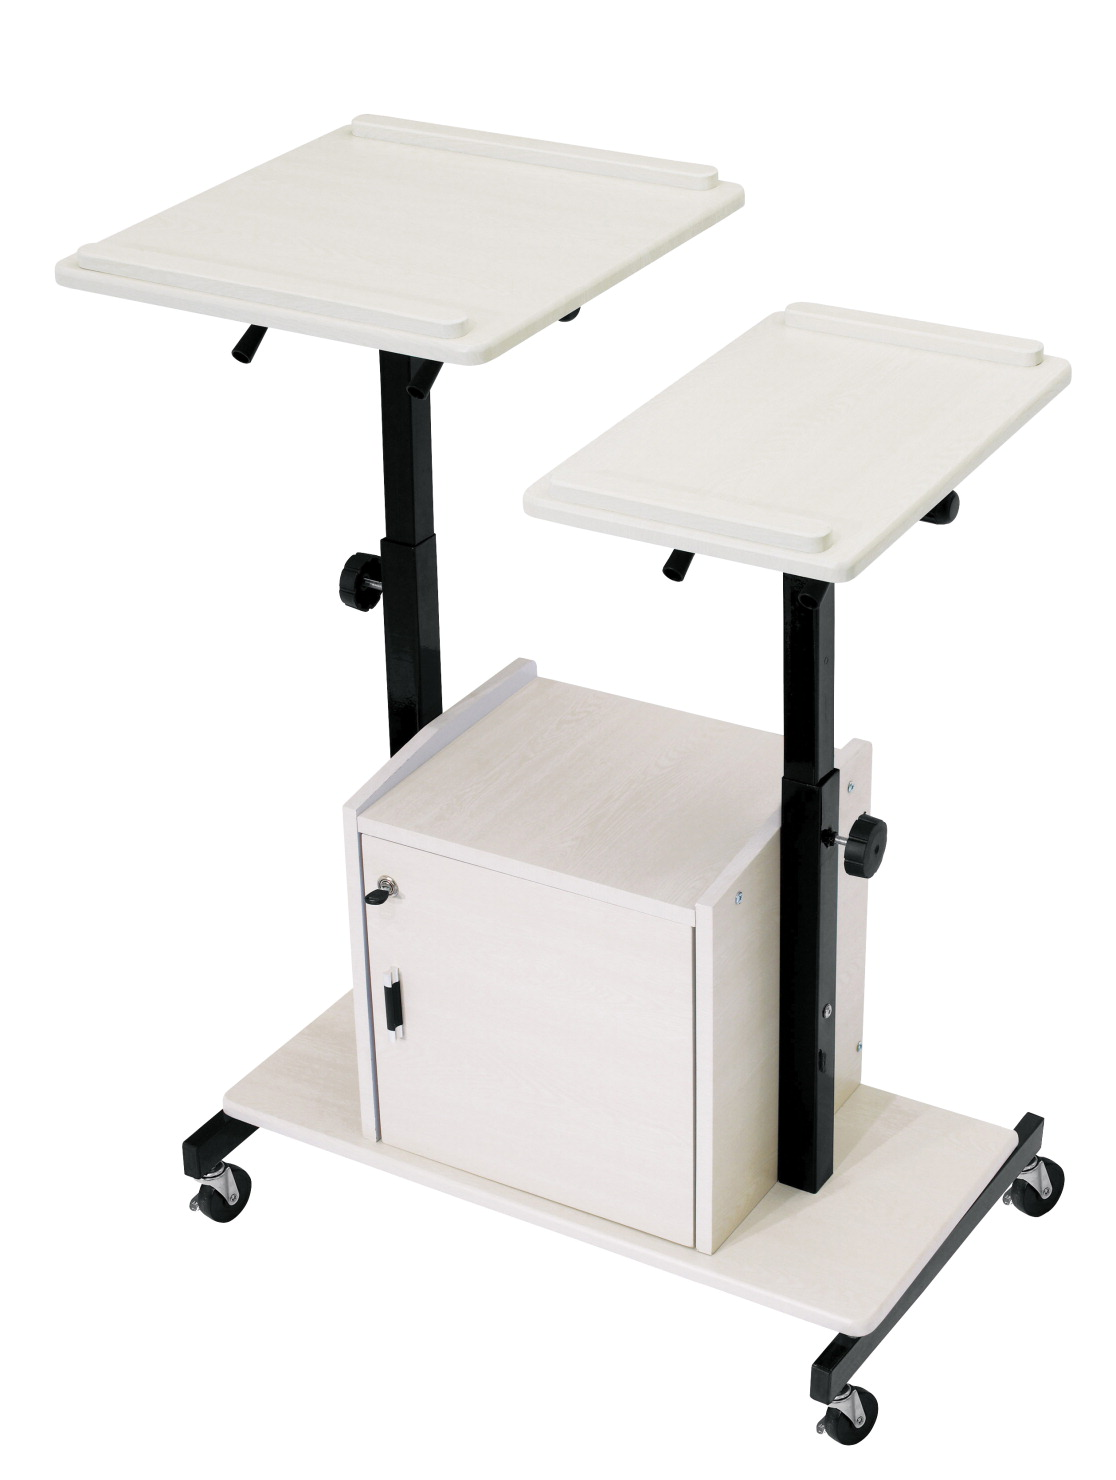 Oklahoma Sound PRC 300 Deluxe Presentation Cart, 32 x 24 x 44 Inches